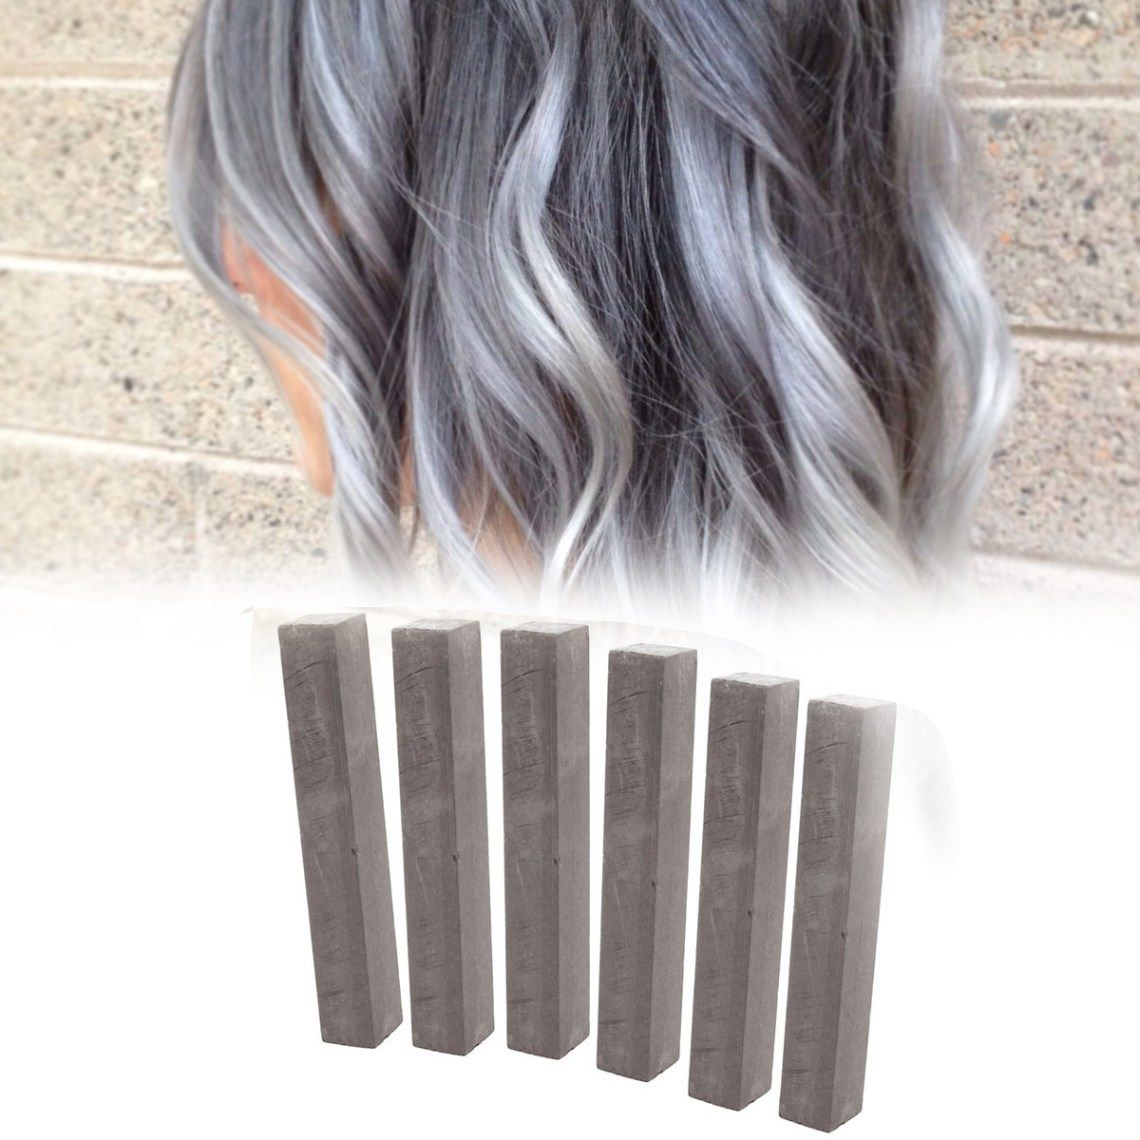 Best Ash Gray Hair Dye Set Cloudy 6 Dark Grey Hair Chalks Diy Dim Grey Hairchalk Kit Grey Hair Dye Dyed Hair Hair Chalk